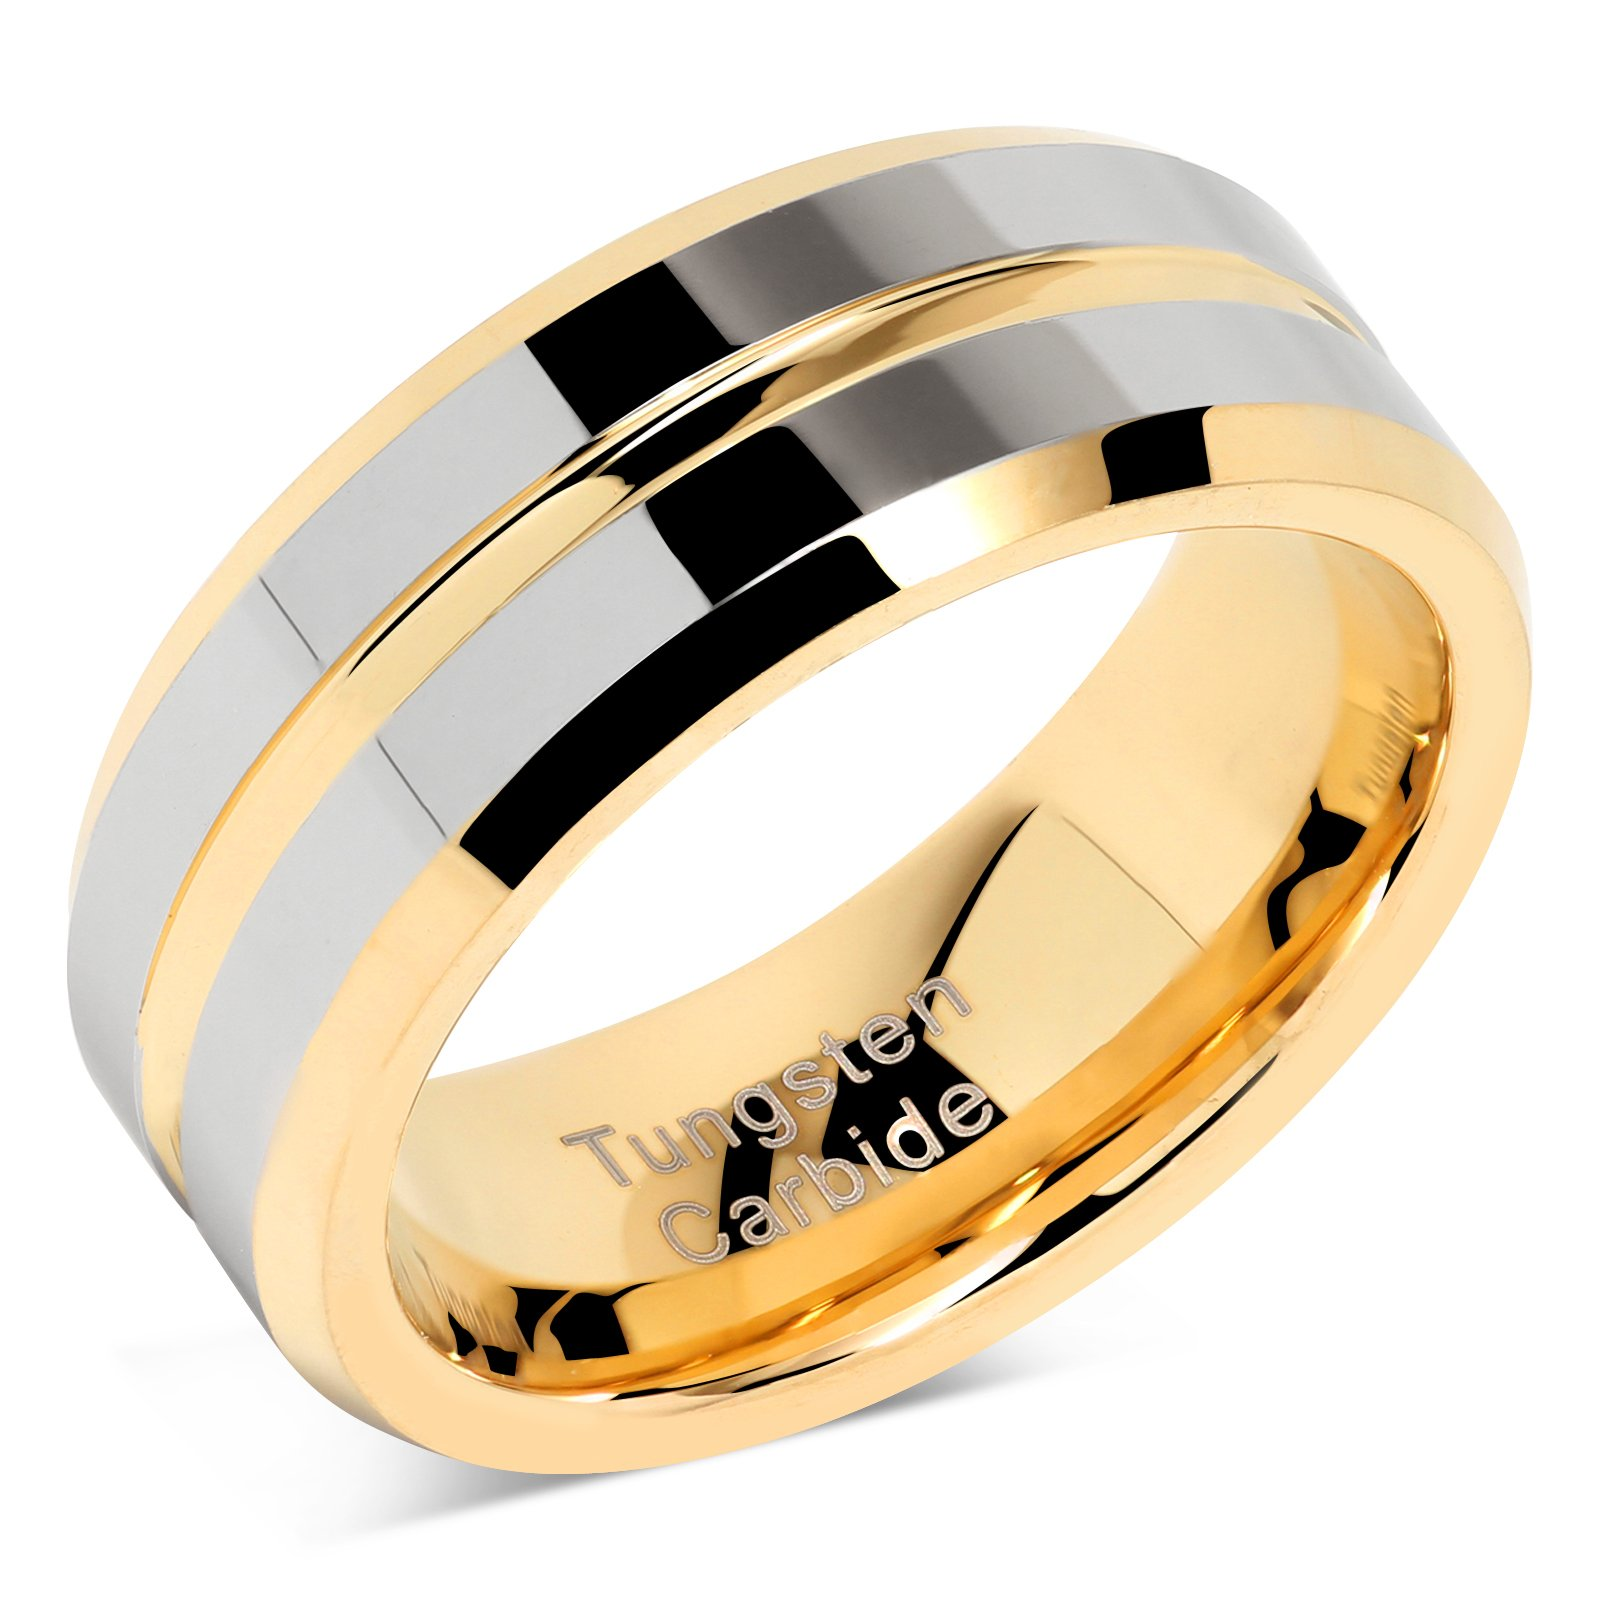 Tungsten Rings for Mens Wedding Bands Gold Silver Two Tone Grooved Center Line Size 8-15 (13) by 100S JEWELRY (Image #7)